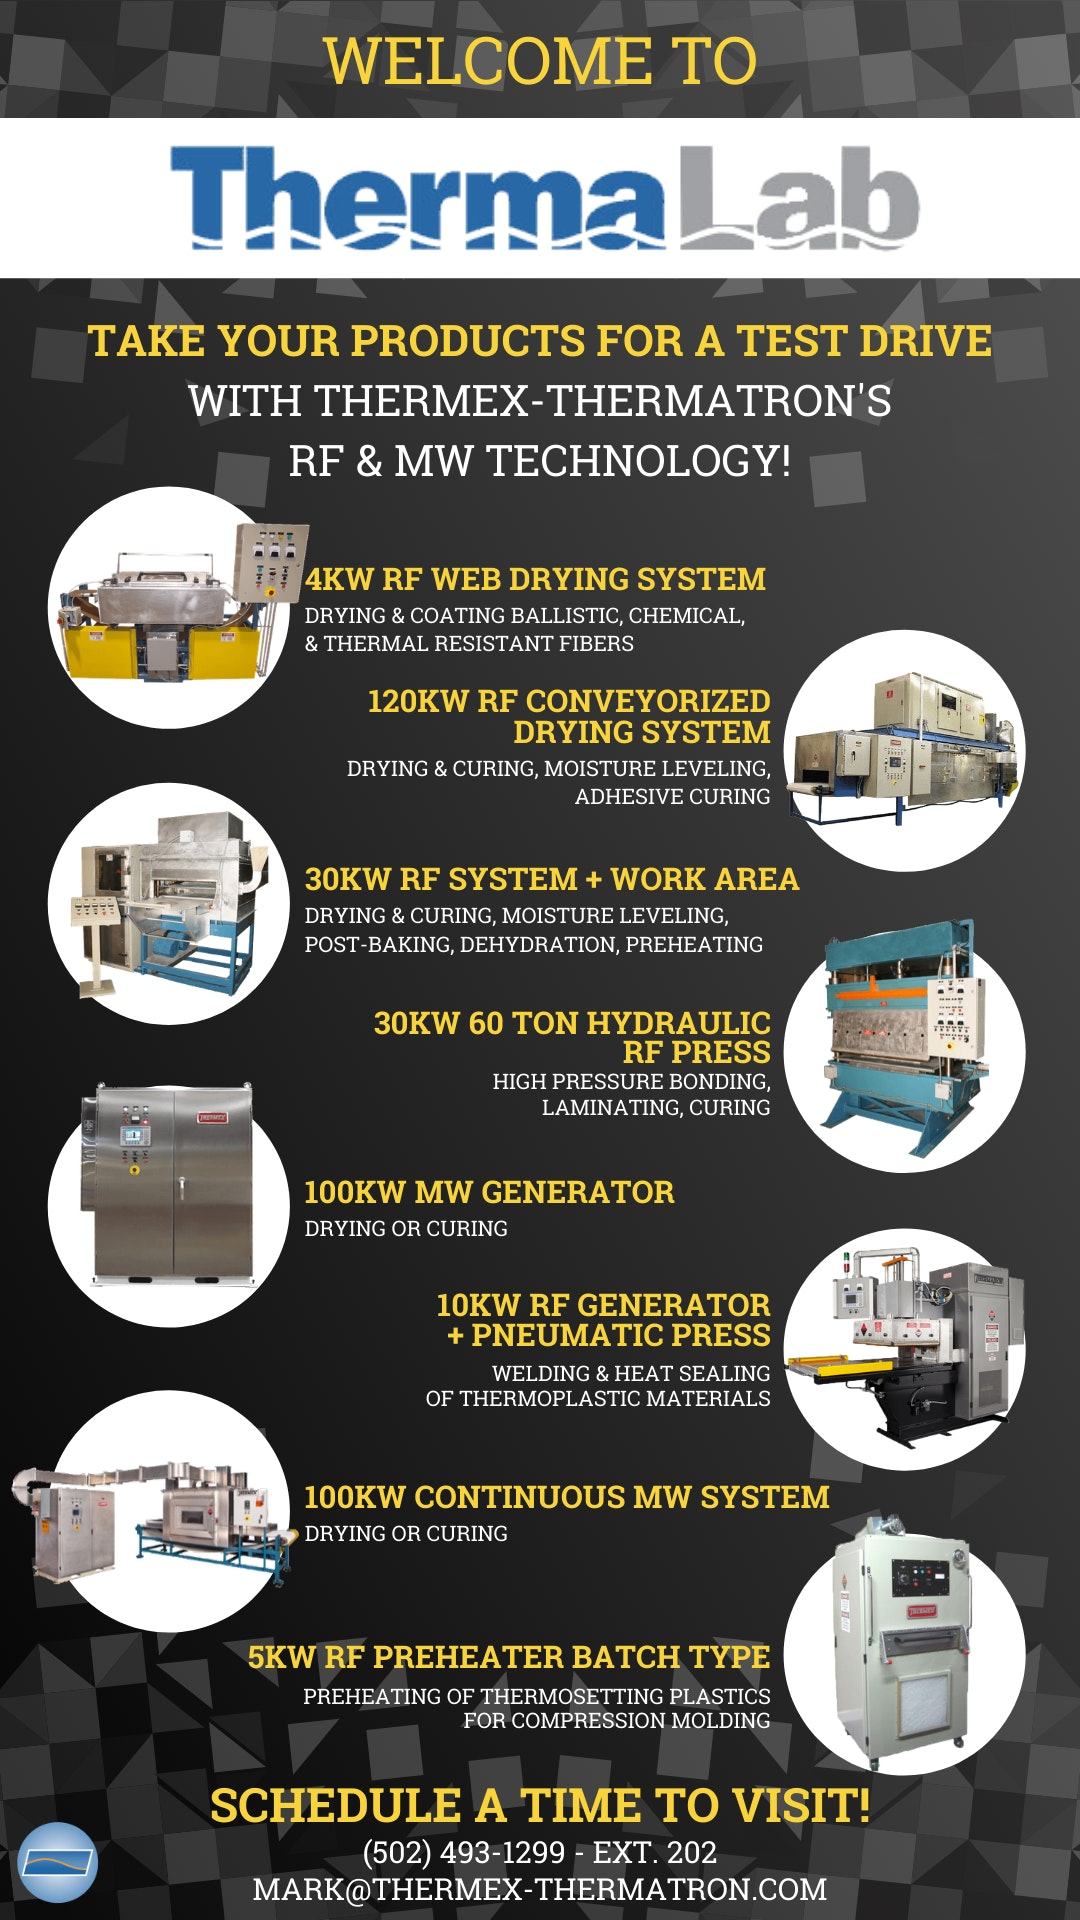 Thermex Thermatron The Science of Process Heating Thermalab Systems